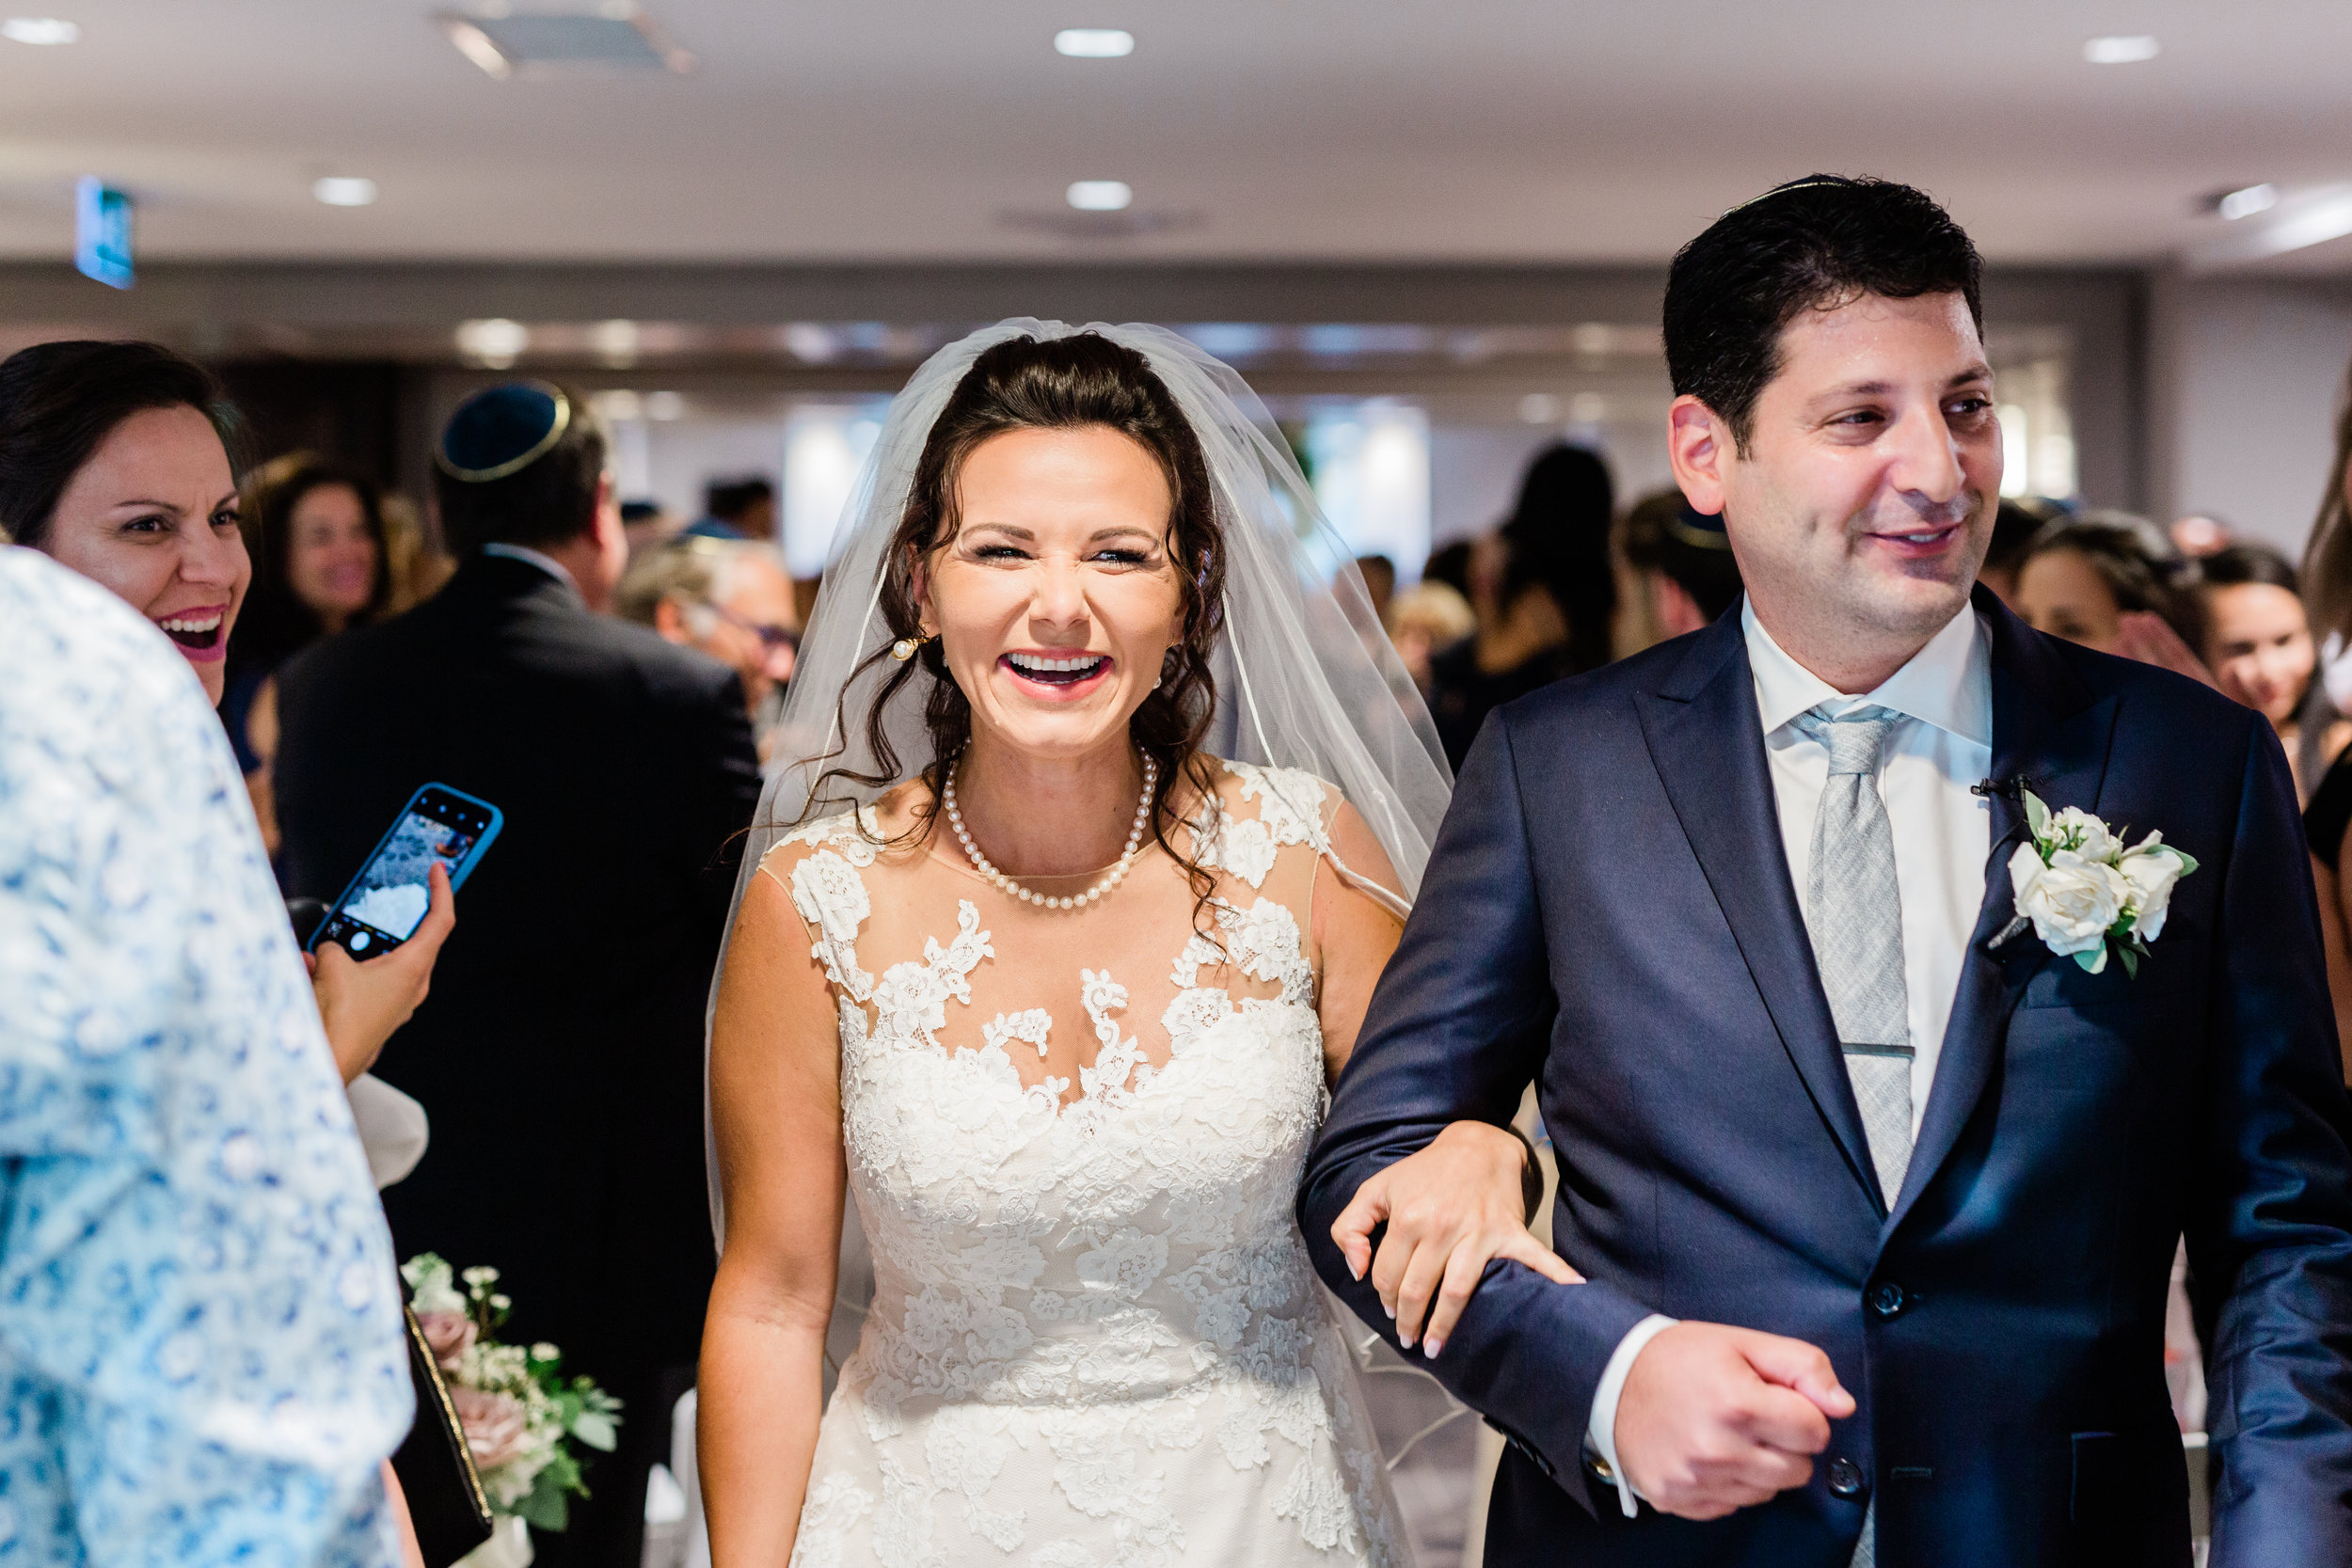 Amir-Danielle-David-Svetlana-Bayview-Wedding-Photography-532.jpg